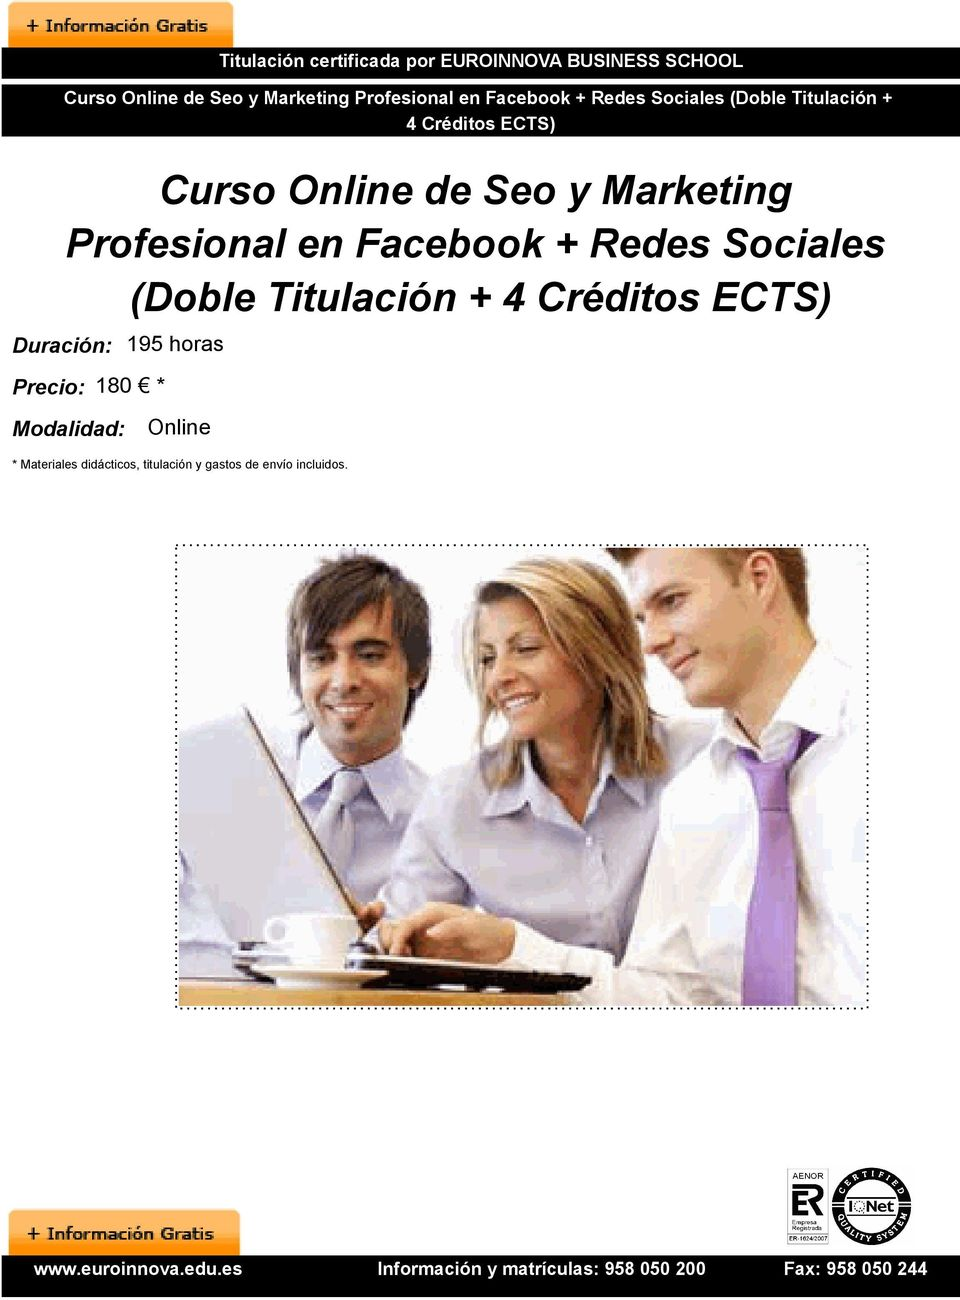 Marketing Profesional en Facebook + Redes Sociales (Doble Titulación + Duración: 195